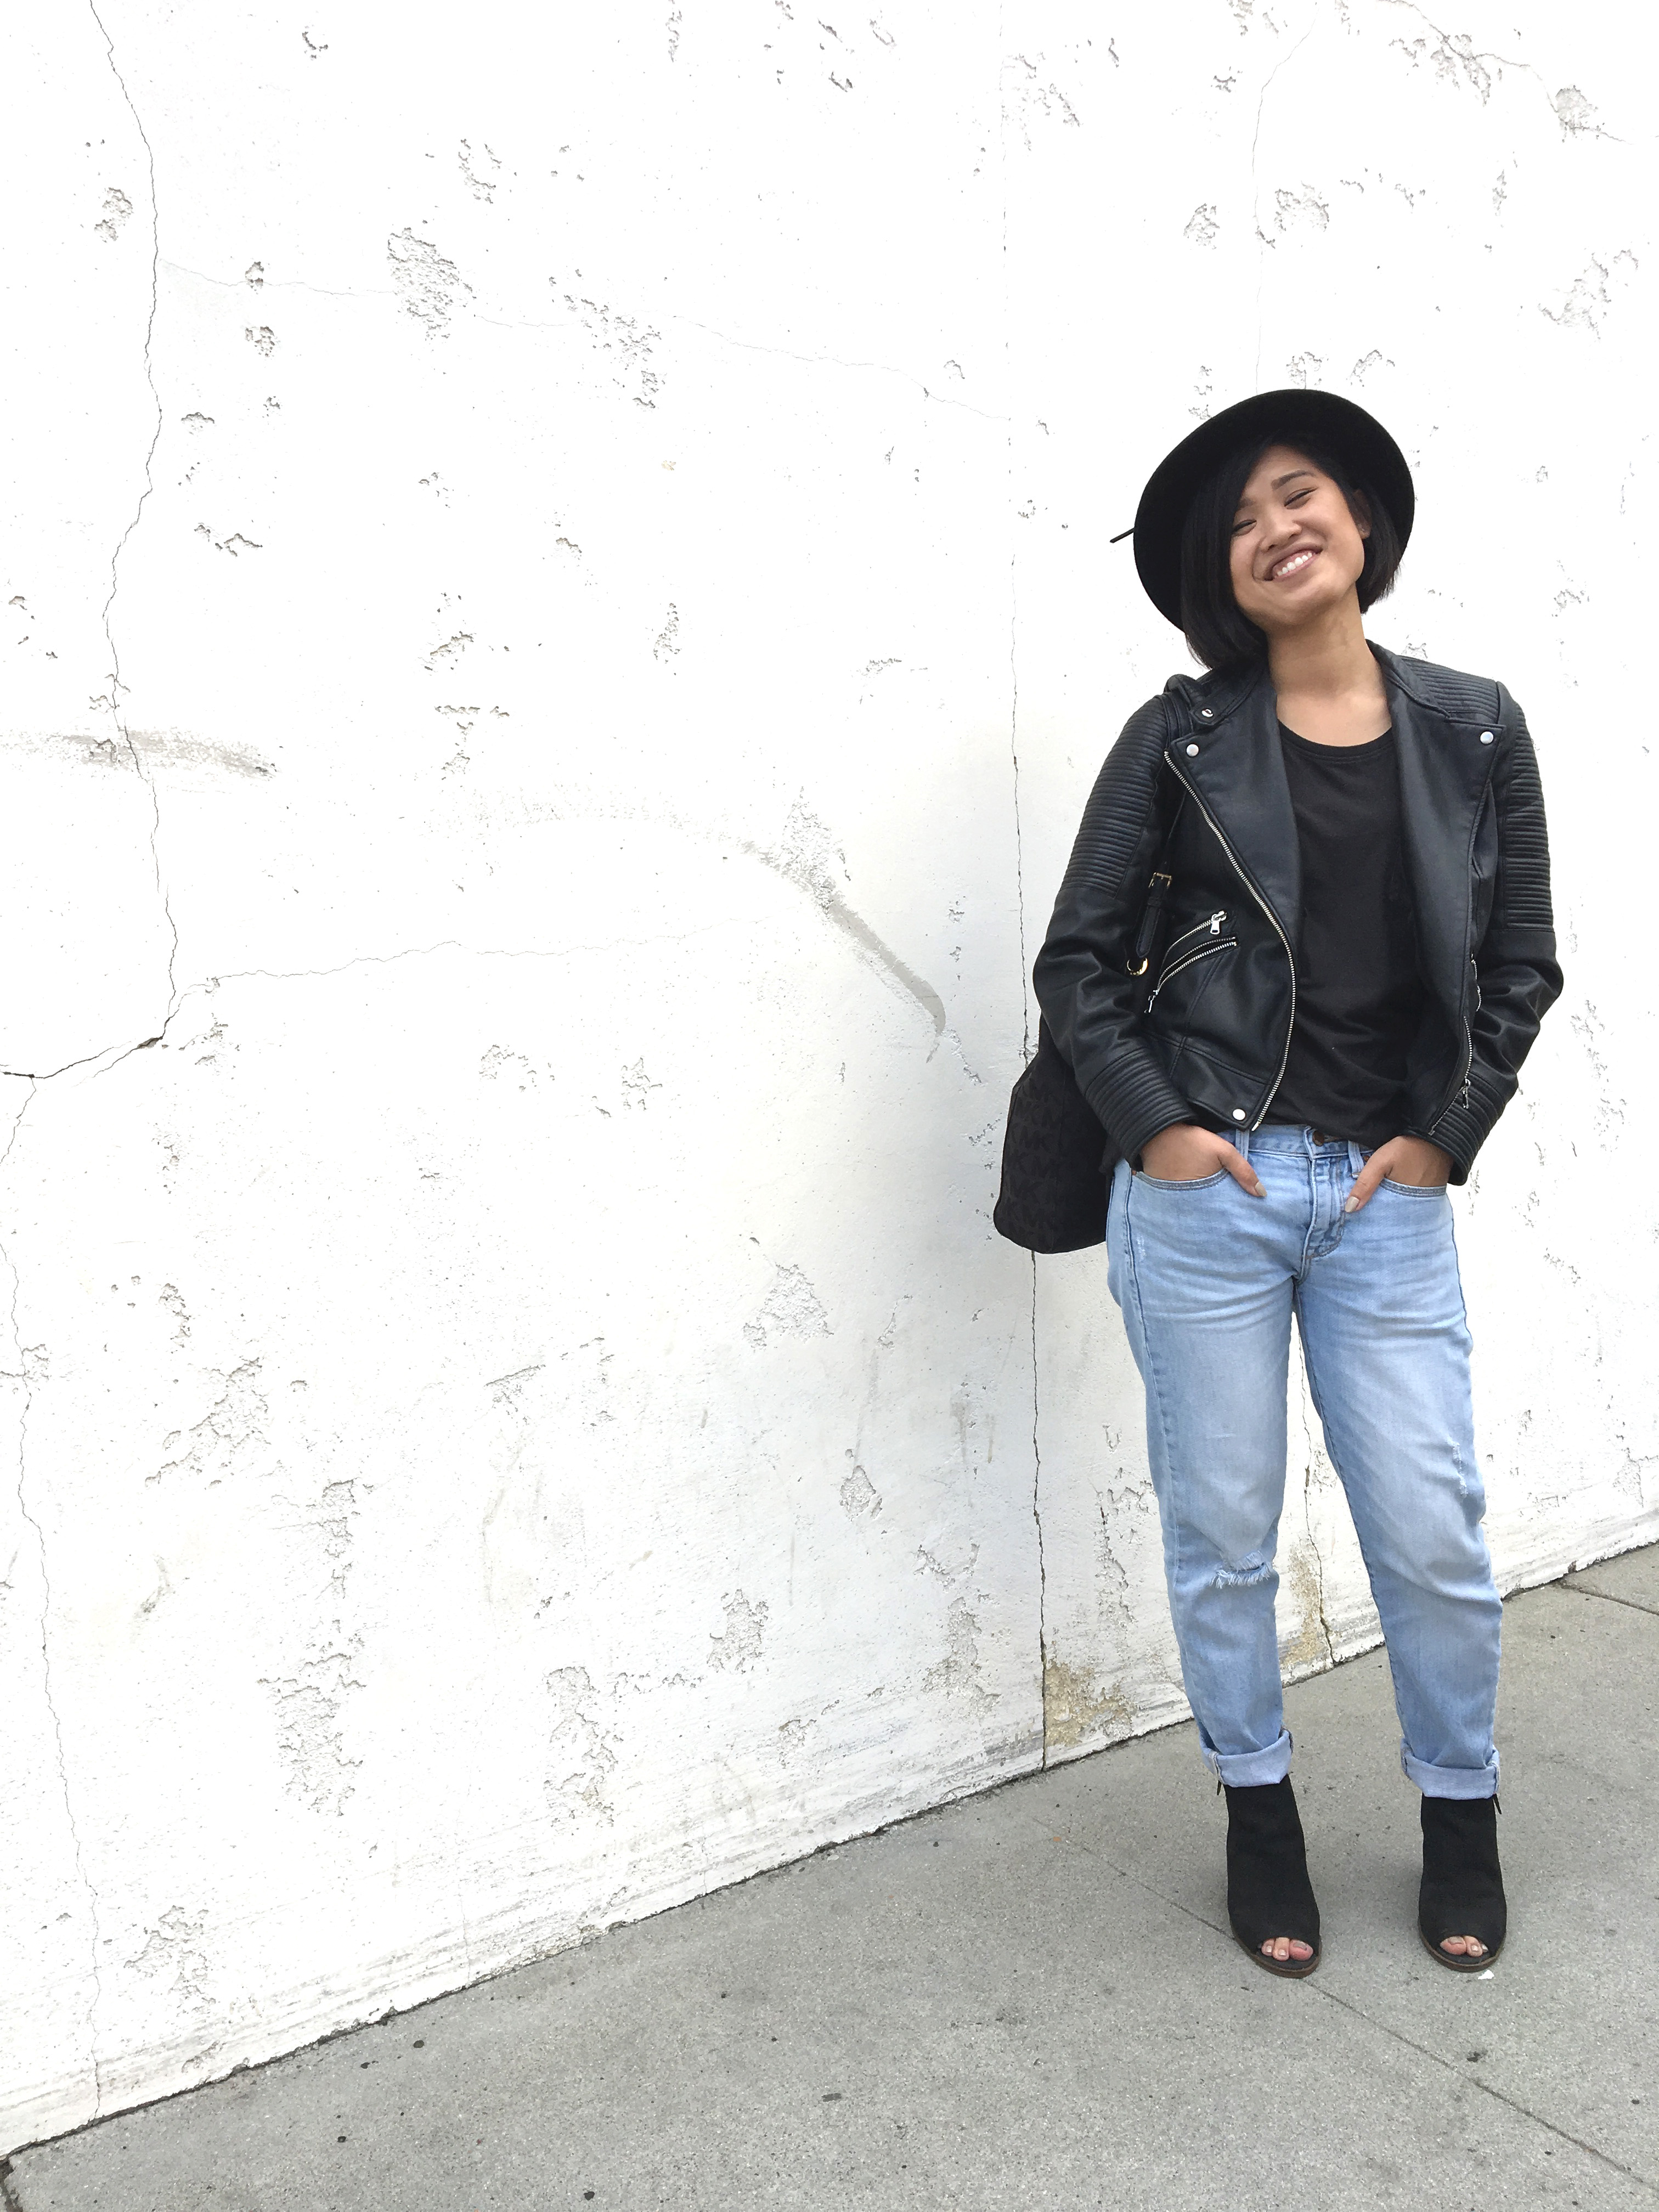 #WardrobeWednesday : Leather Weather